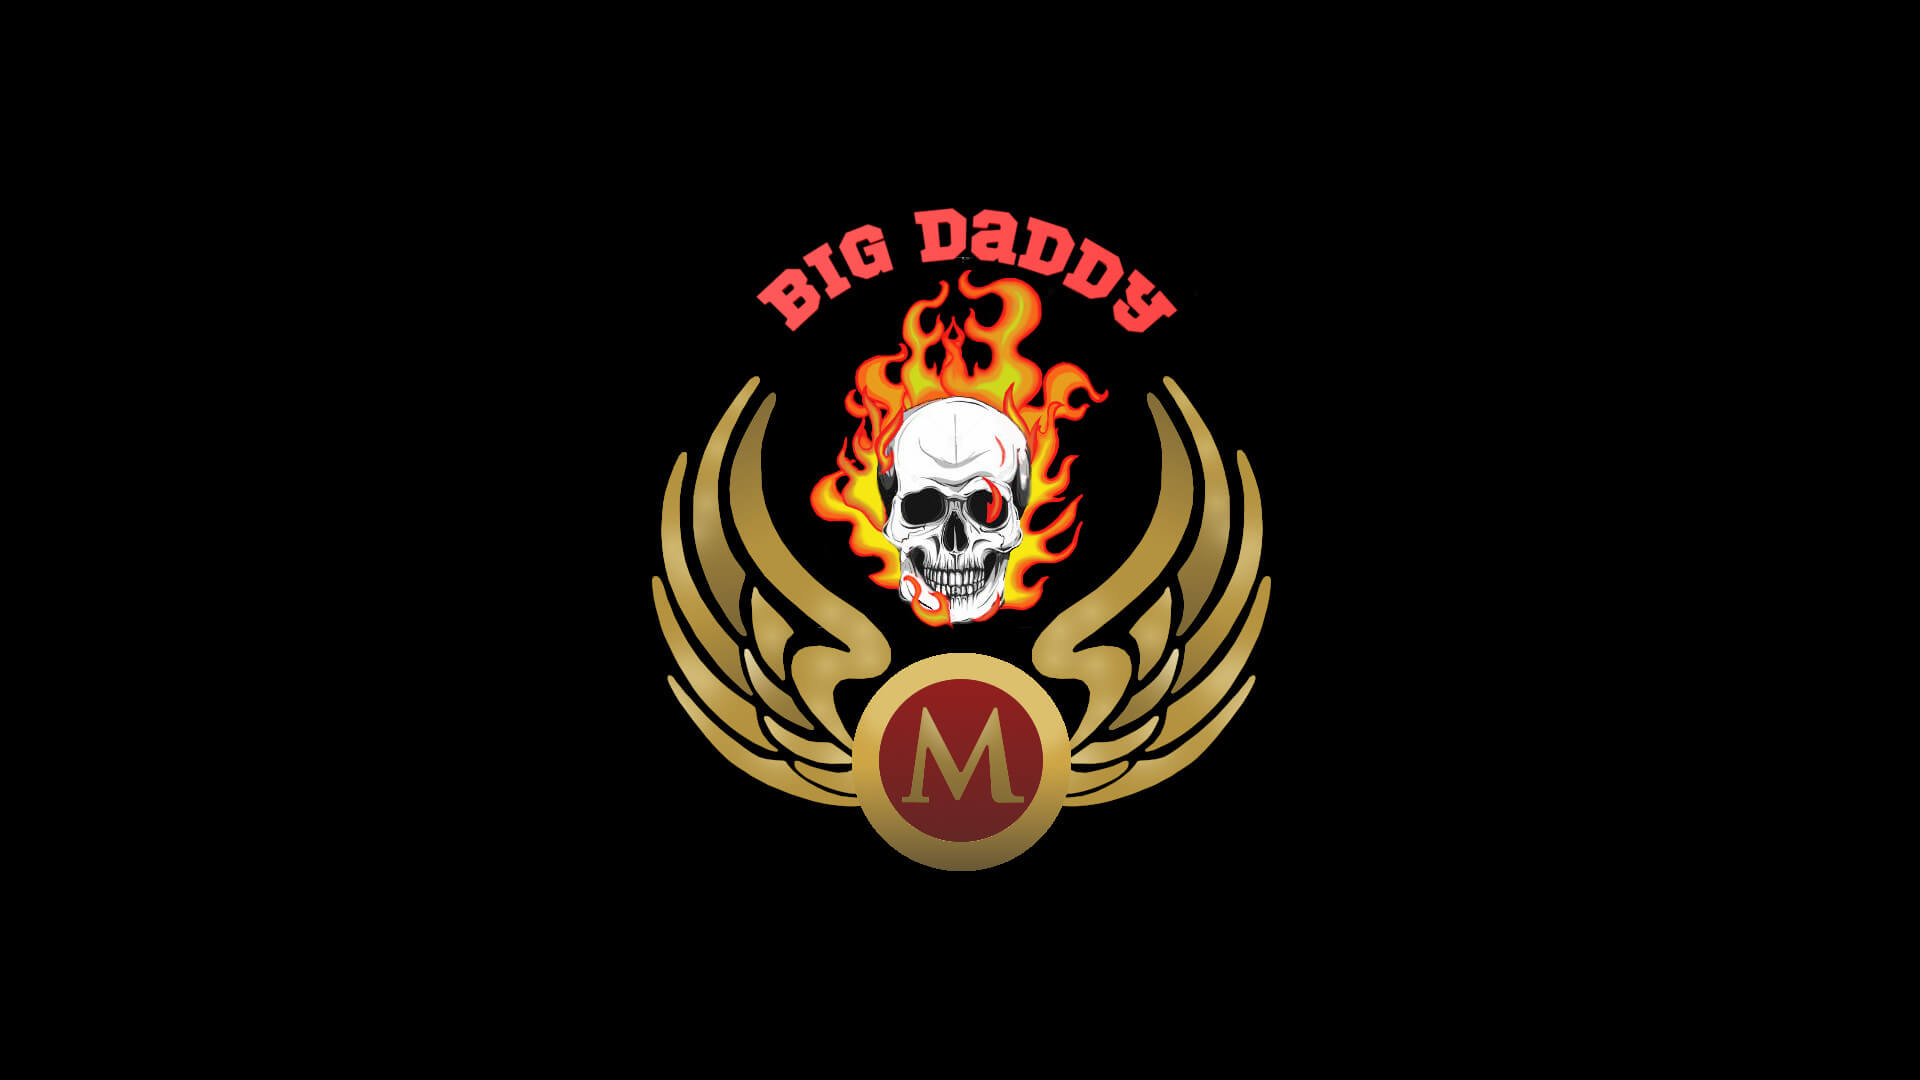 Big daddy logo